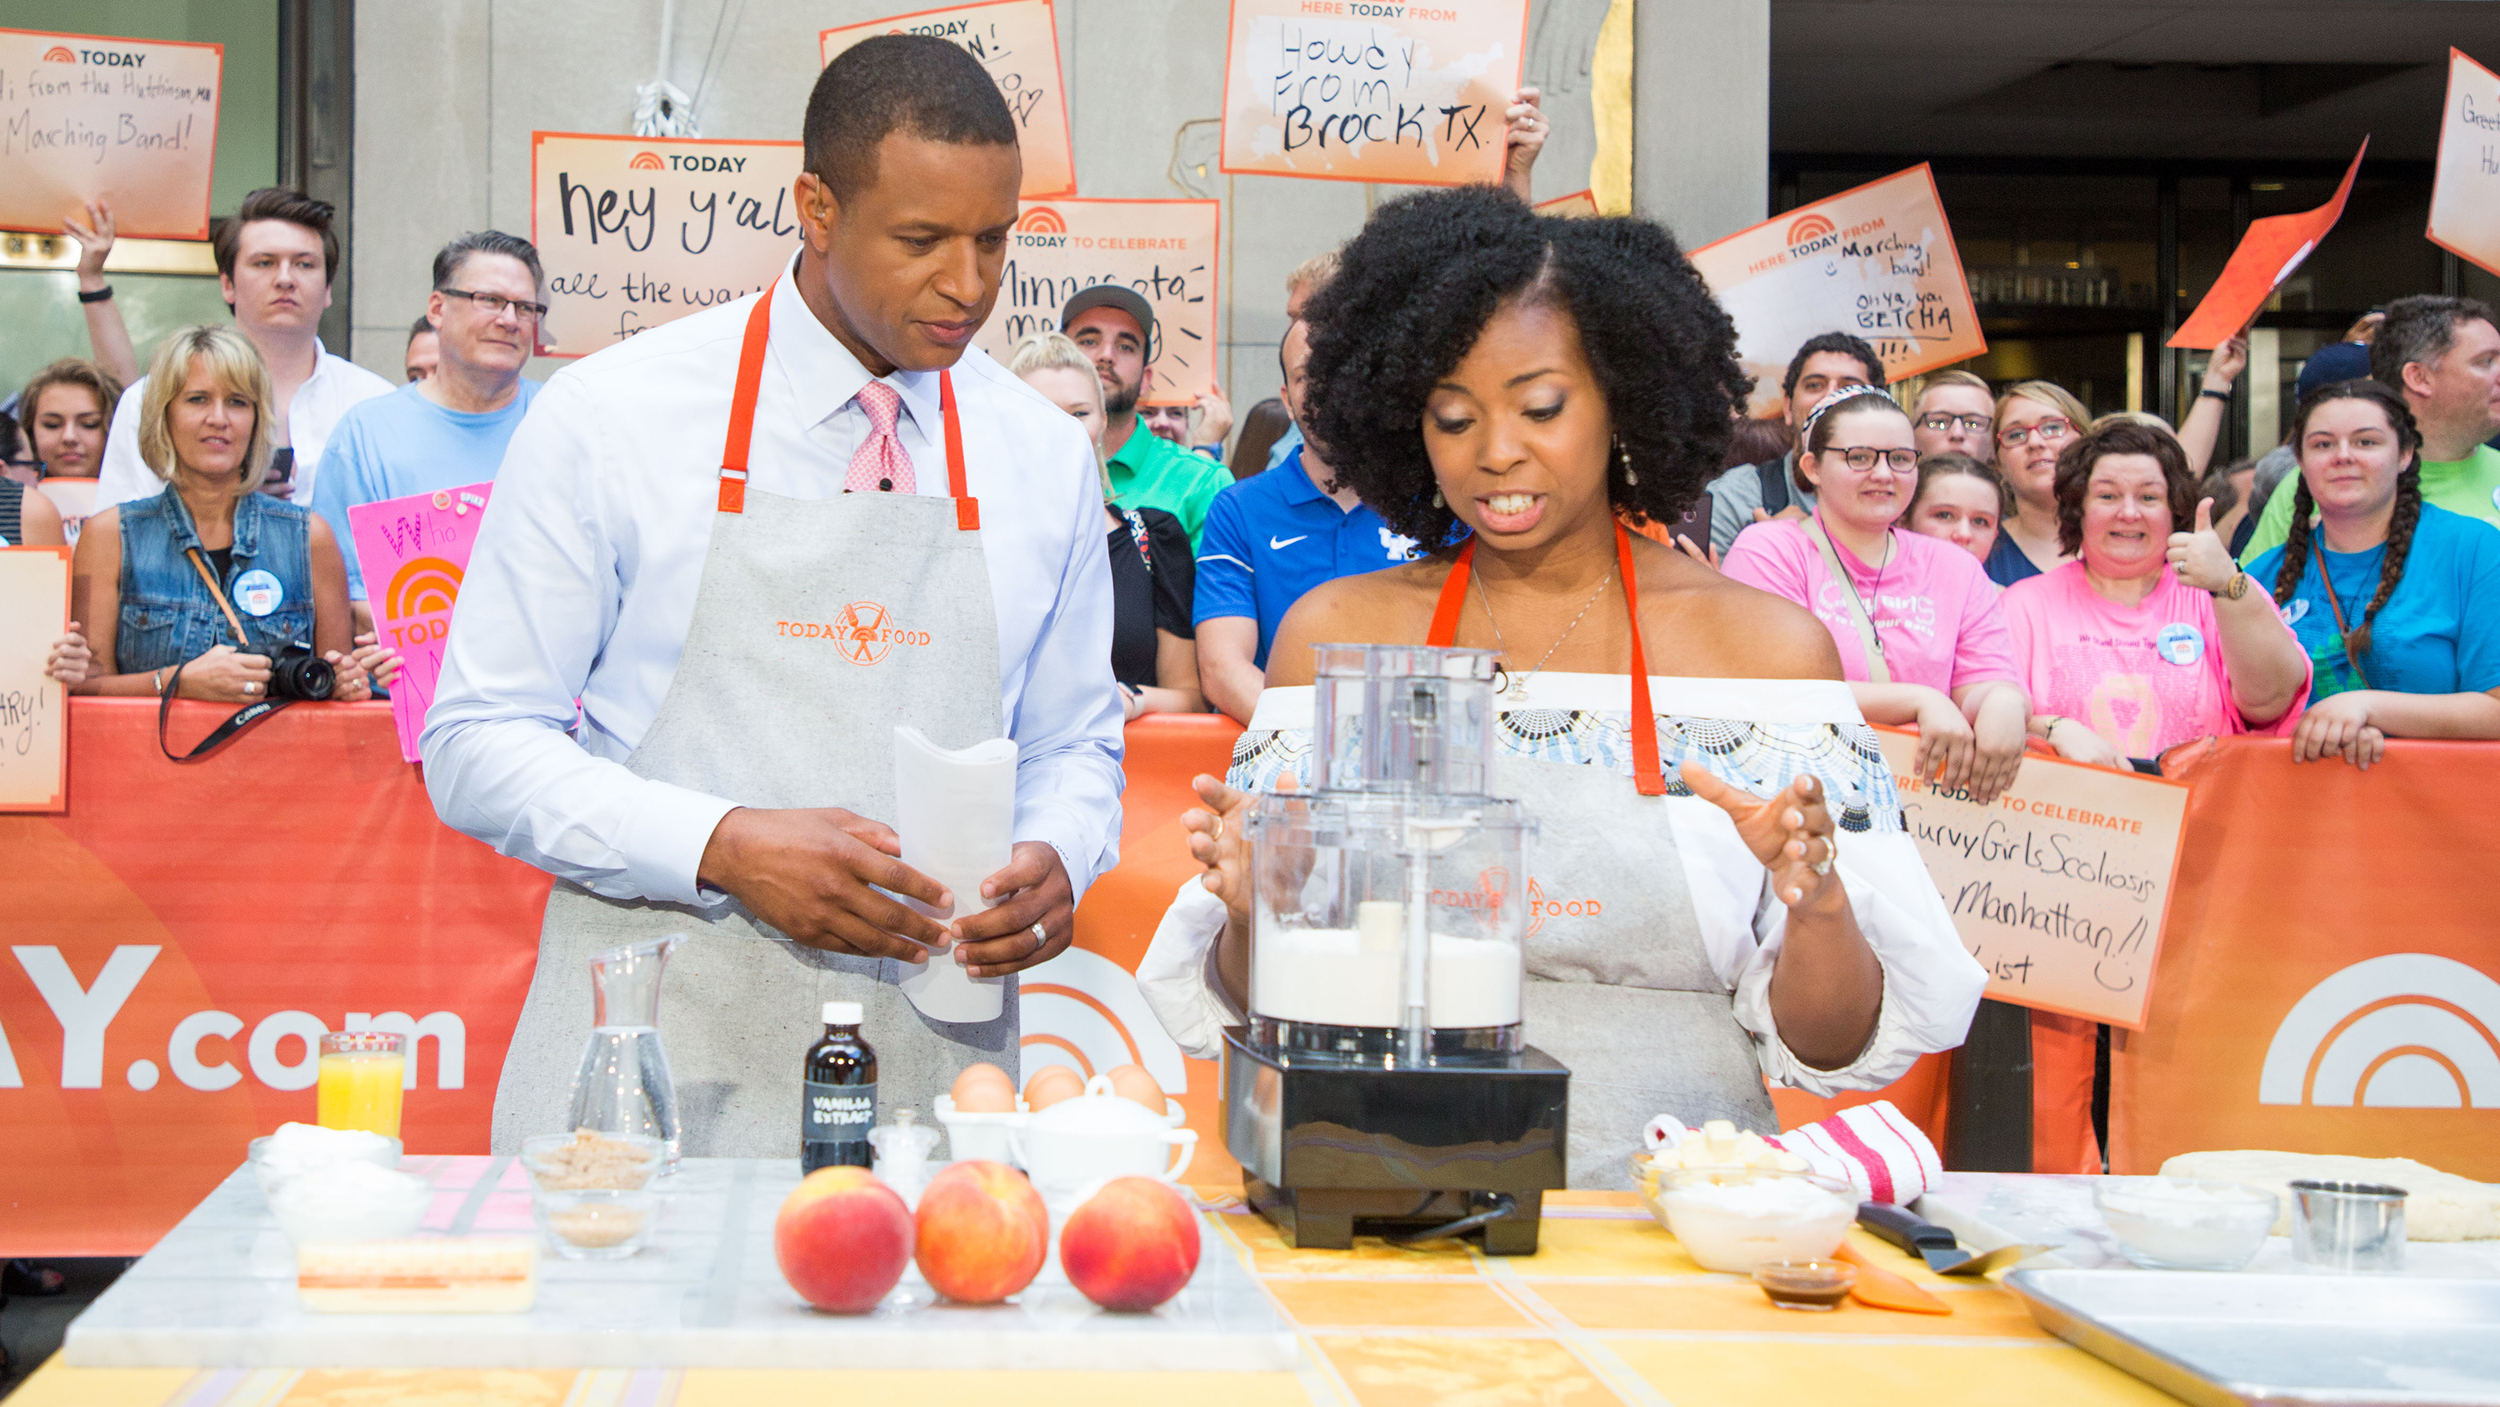 Jocelyn Delk Adams' cake decorating class will teach you how to bake